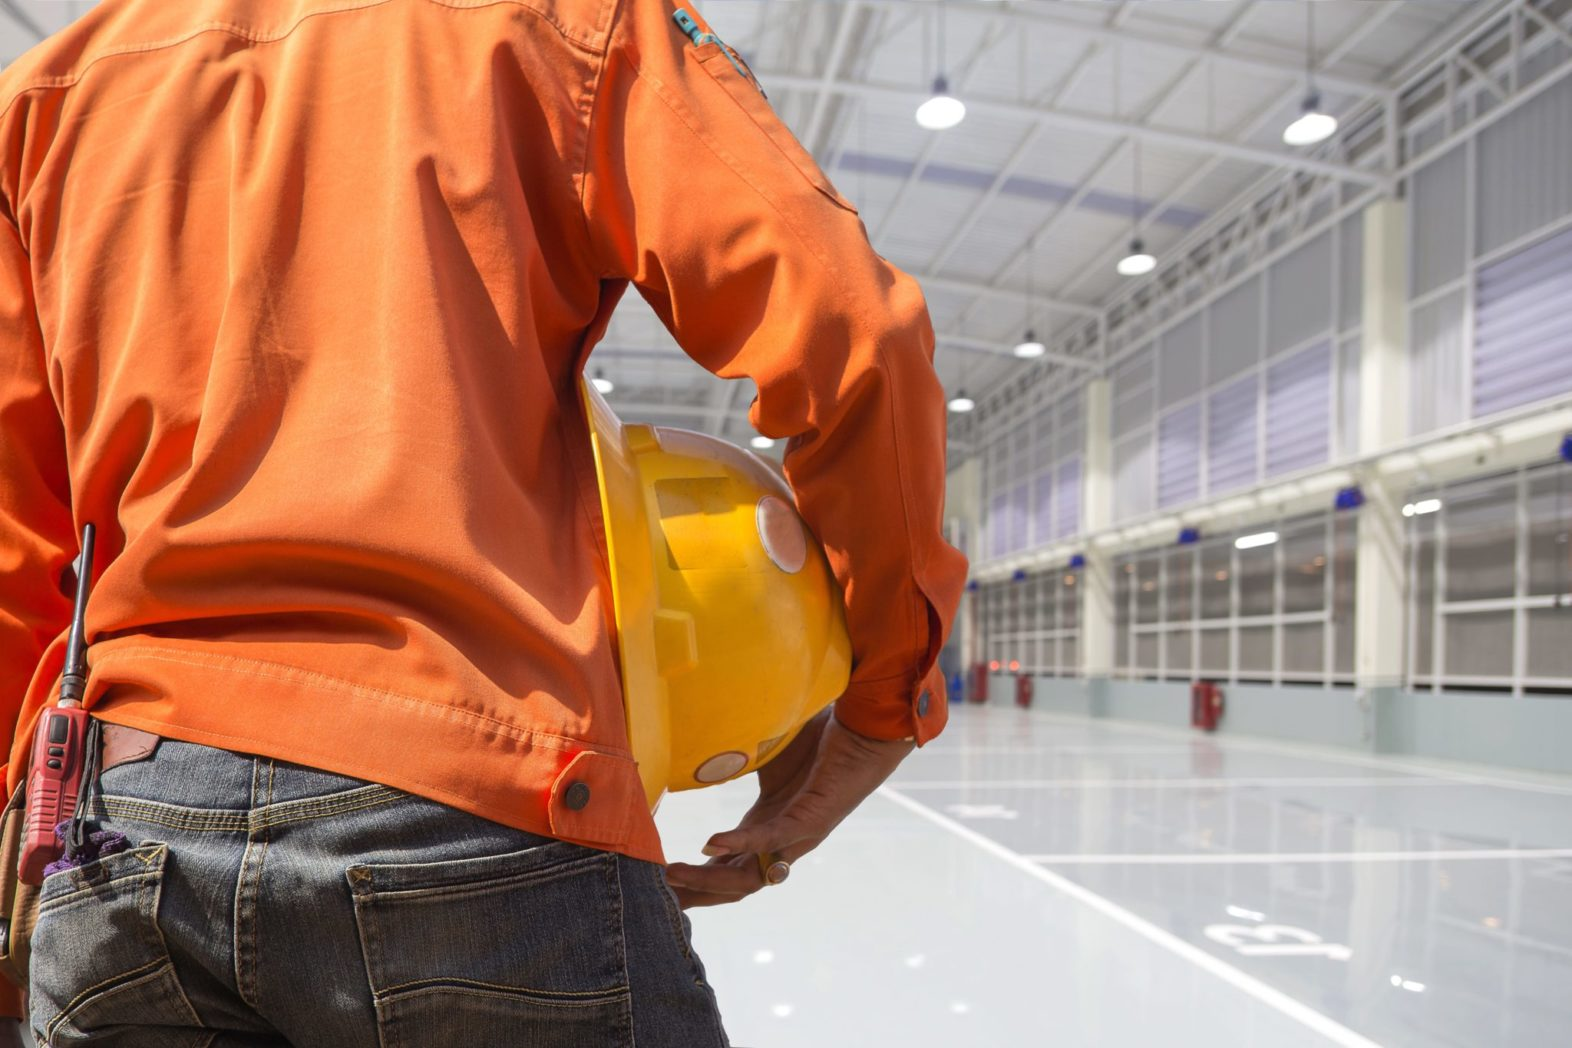 Where and when would you choose epoxy flooring